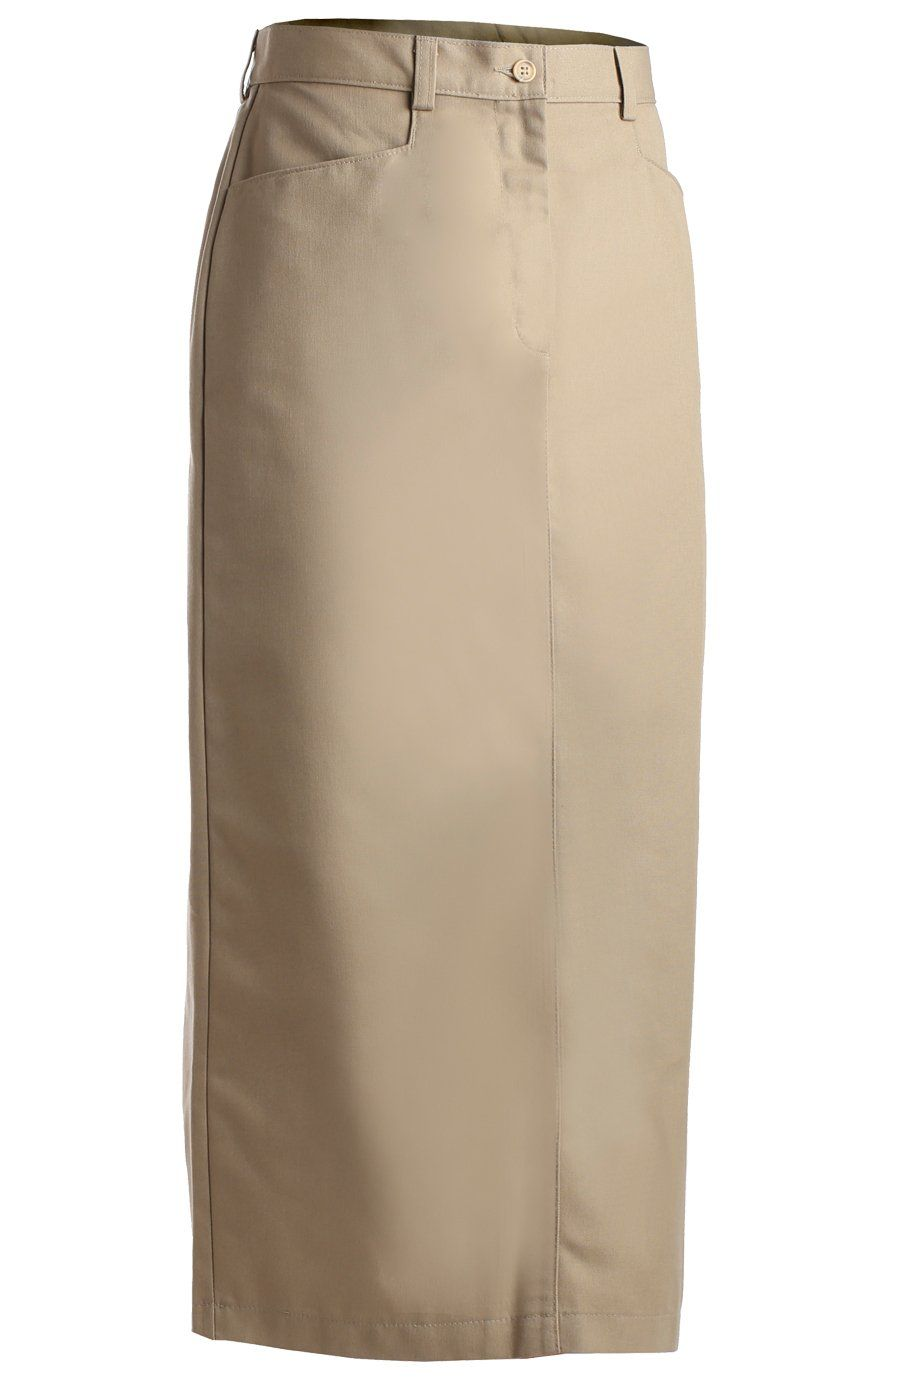 a221f84a3 Edwards Garment Tan Womens 35 Length Chino Skirt Size: 22W *** You could  locate out more details at the link of the image. (This is an affiliate  link).